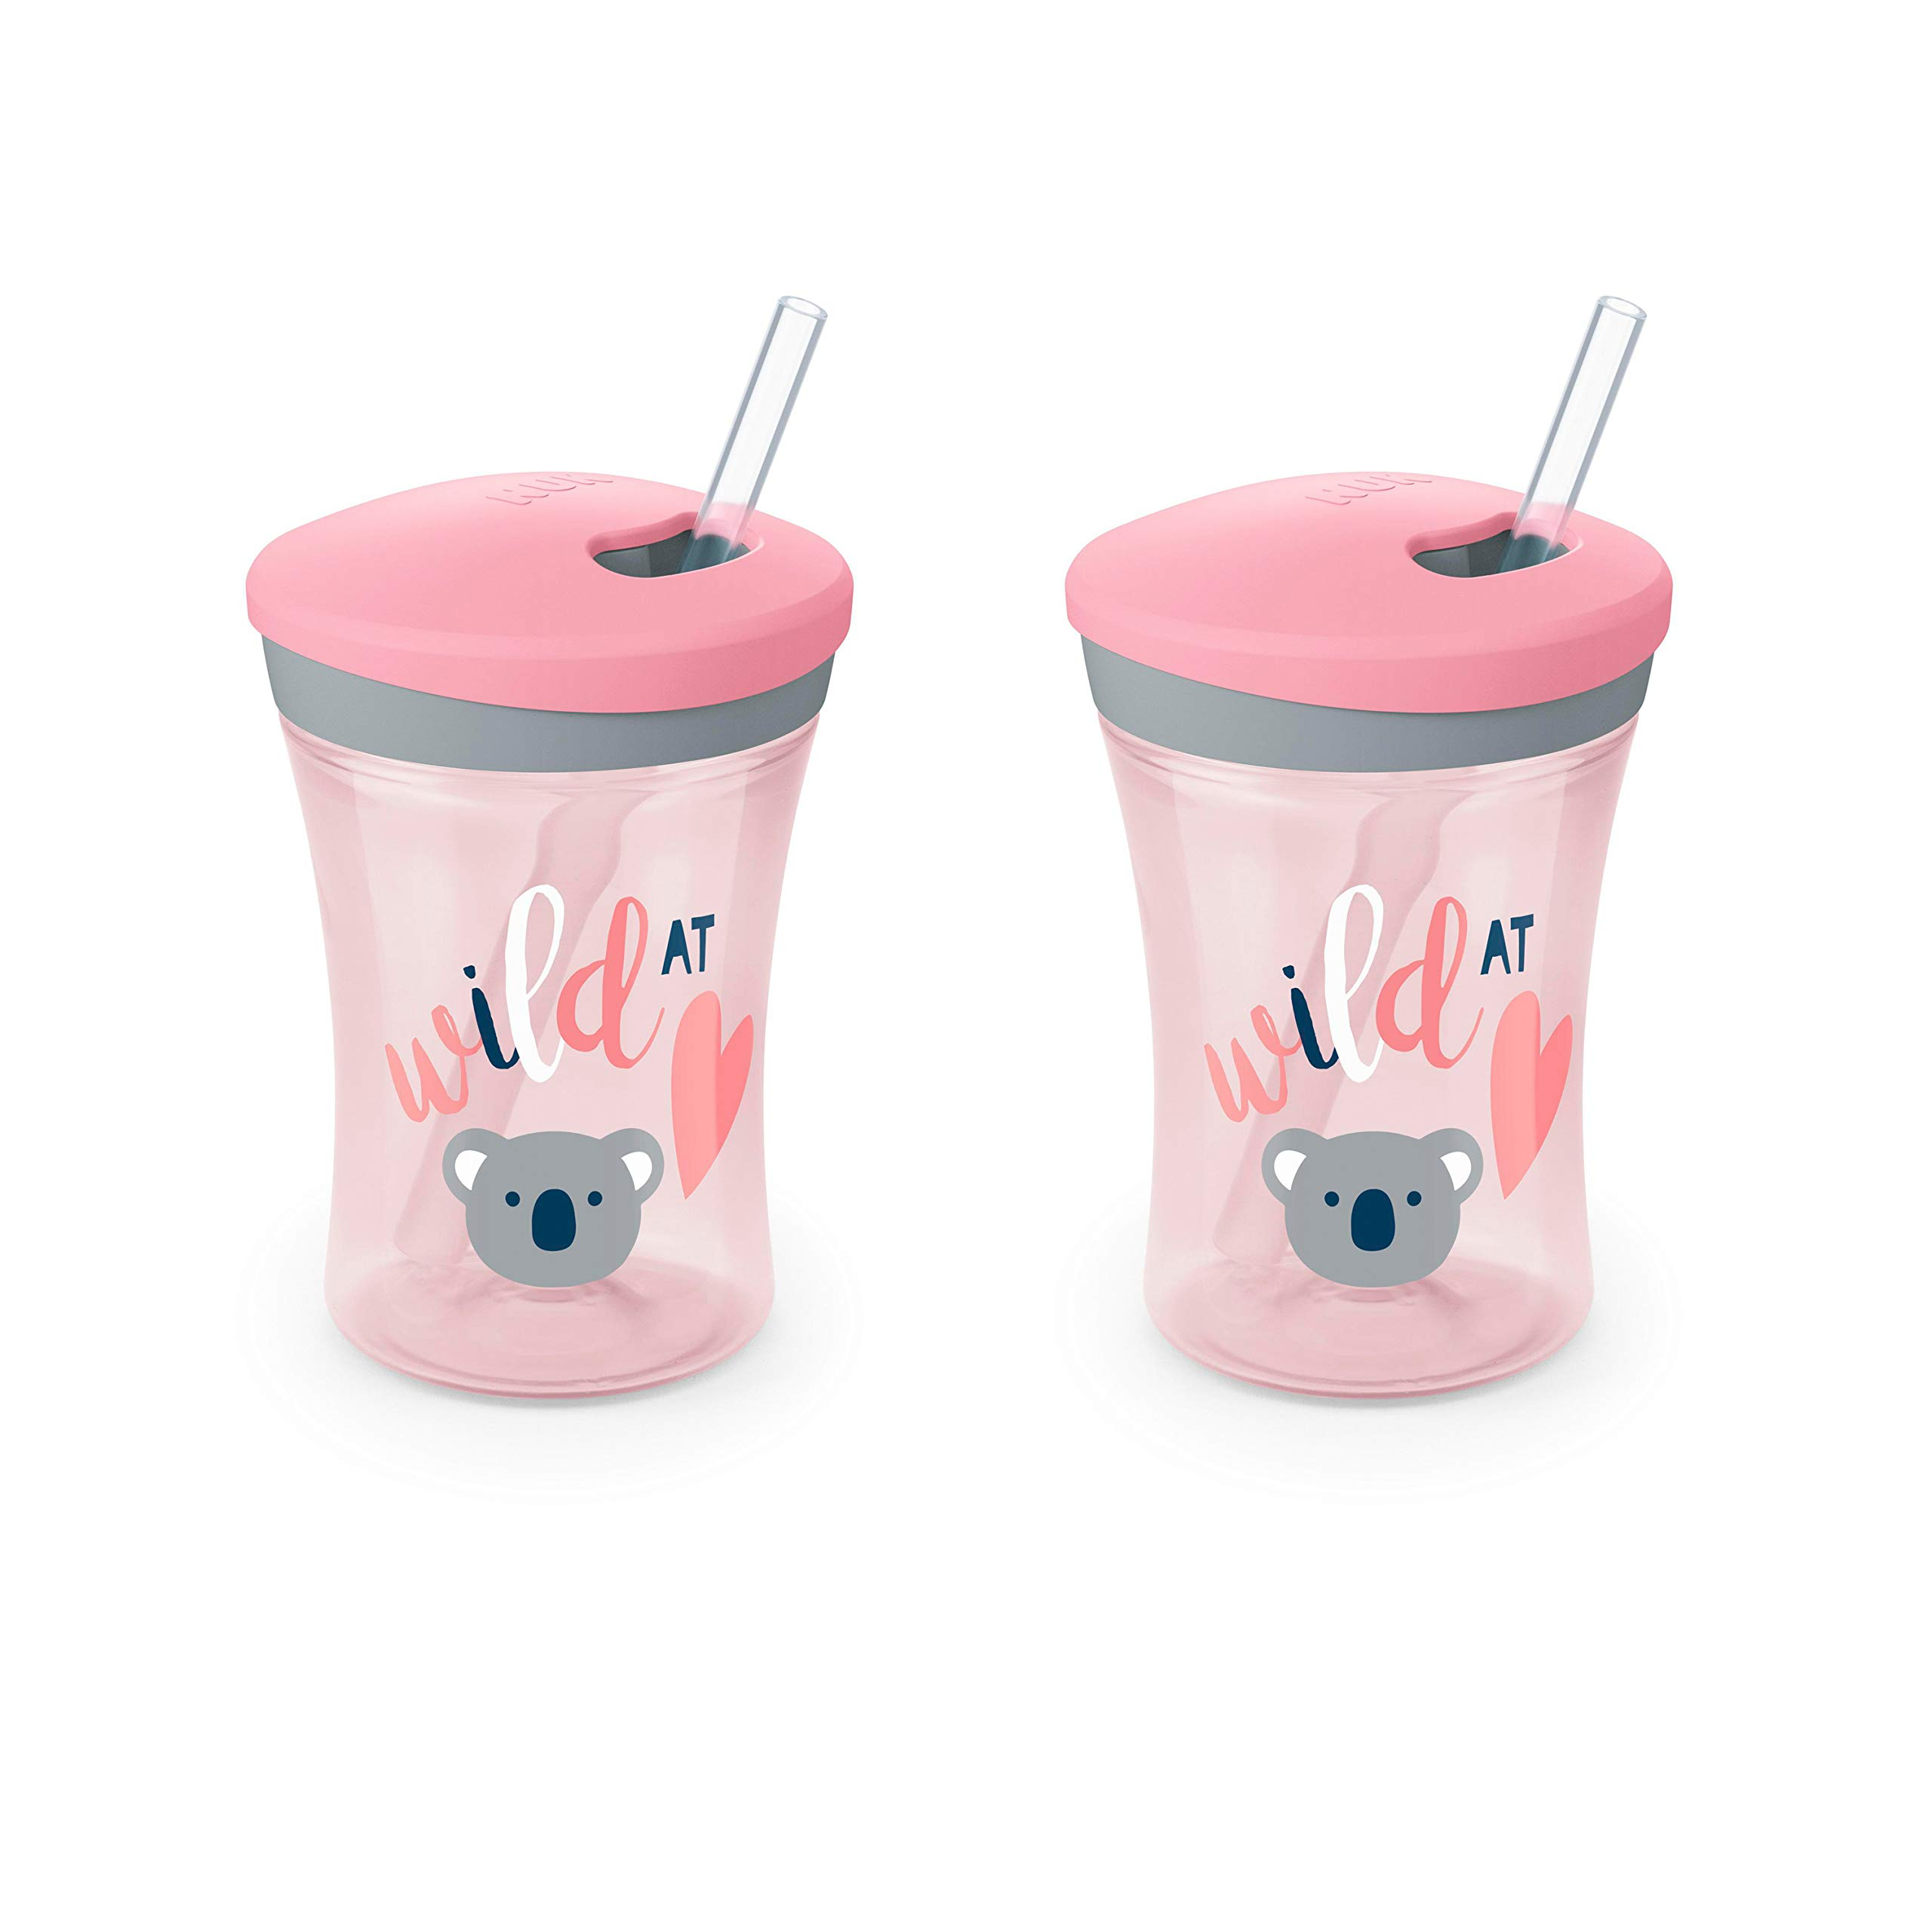 Evolution Straw Cup, 8 oz, 2-Pack by NUK